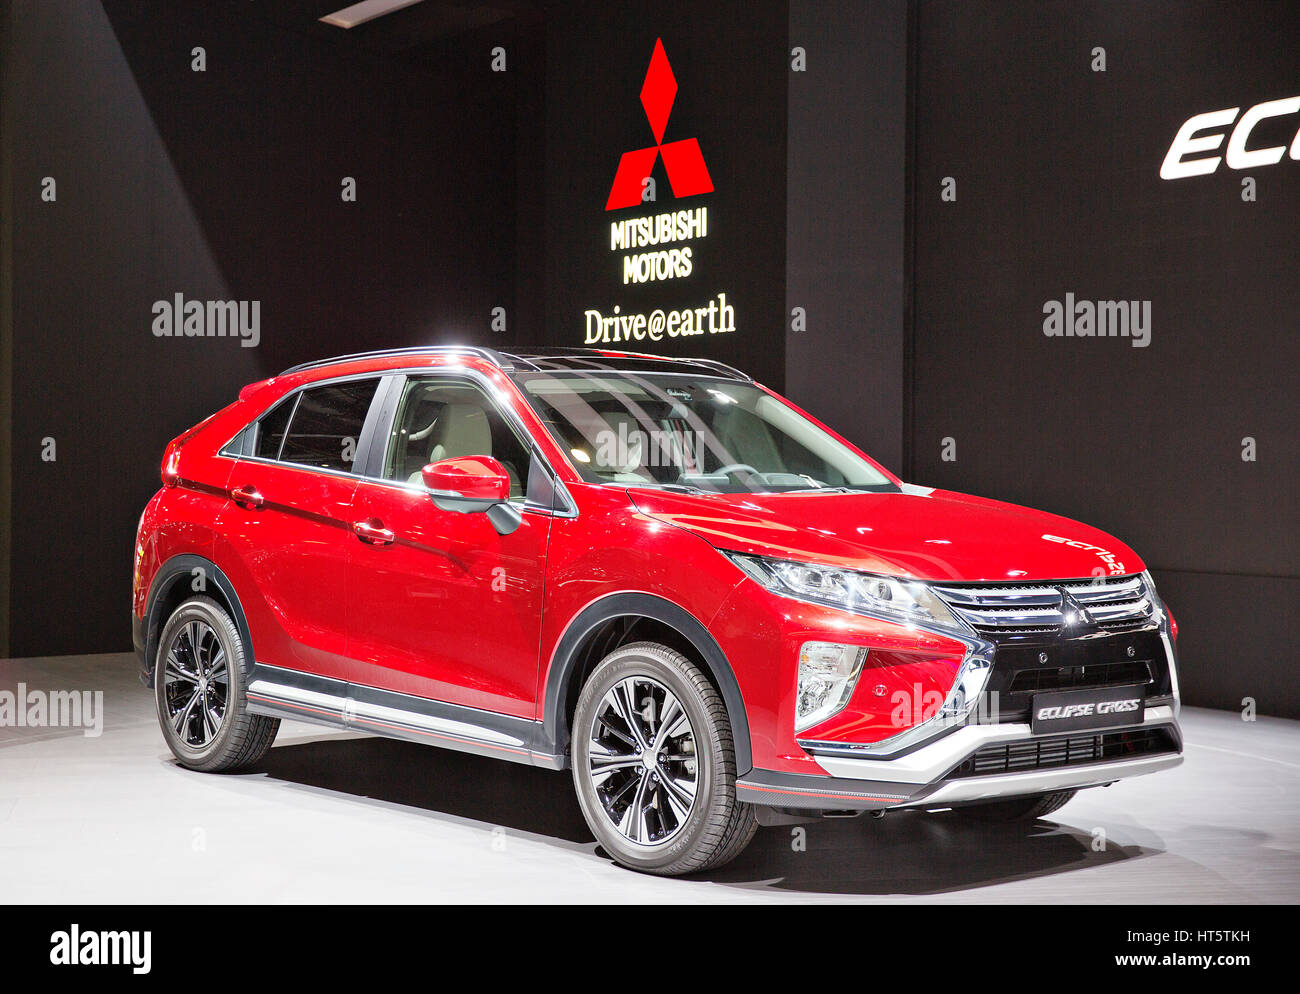 Mitsubishi Eclipse Cross   Stock Image